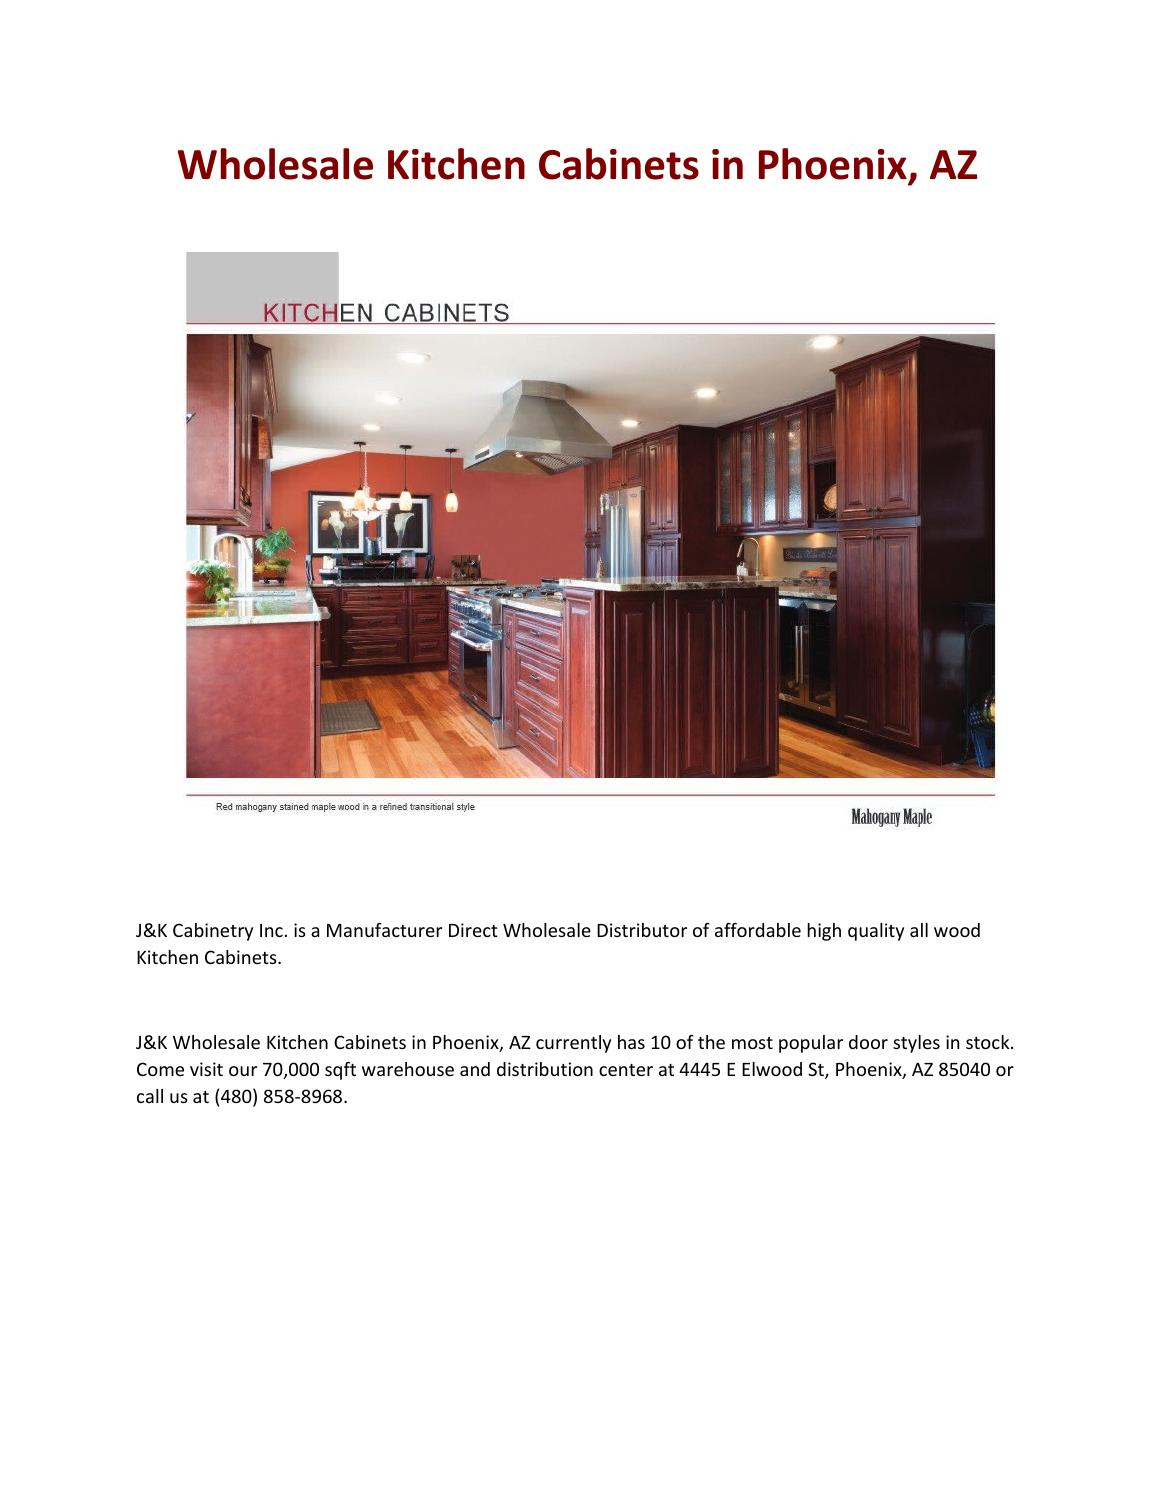 Wholesale Kitchen Cabinets In Phoenix Jk Cabinetry By Edwardmugits Issuu